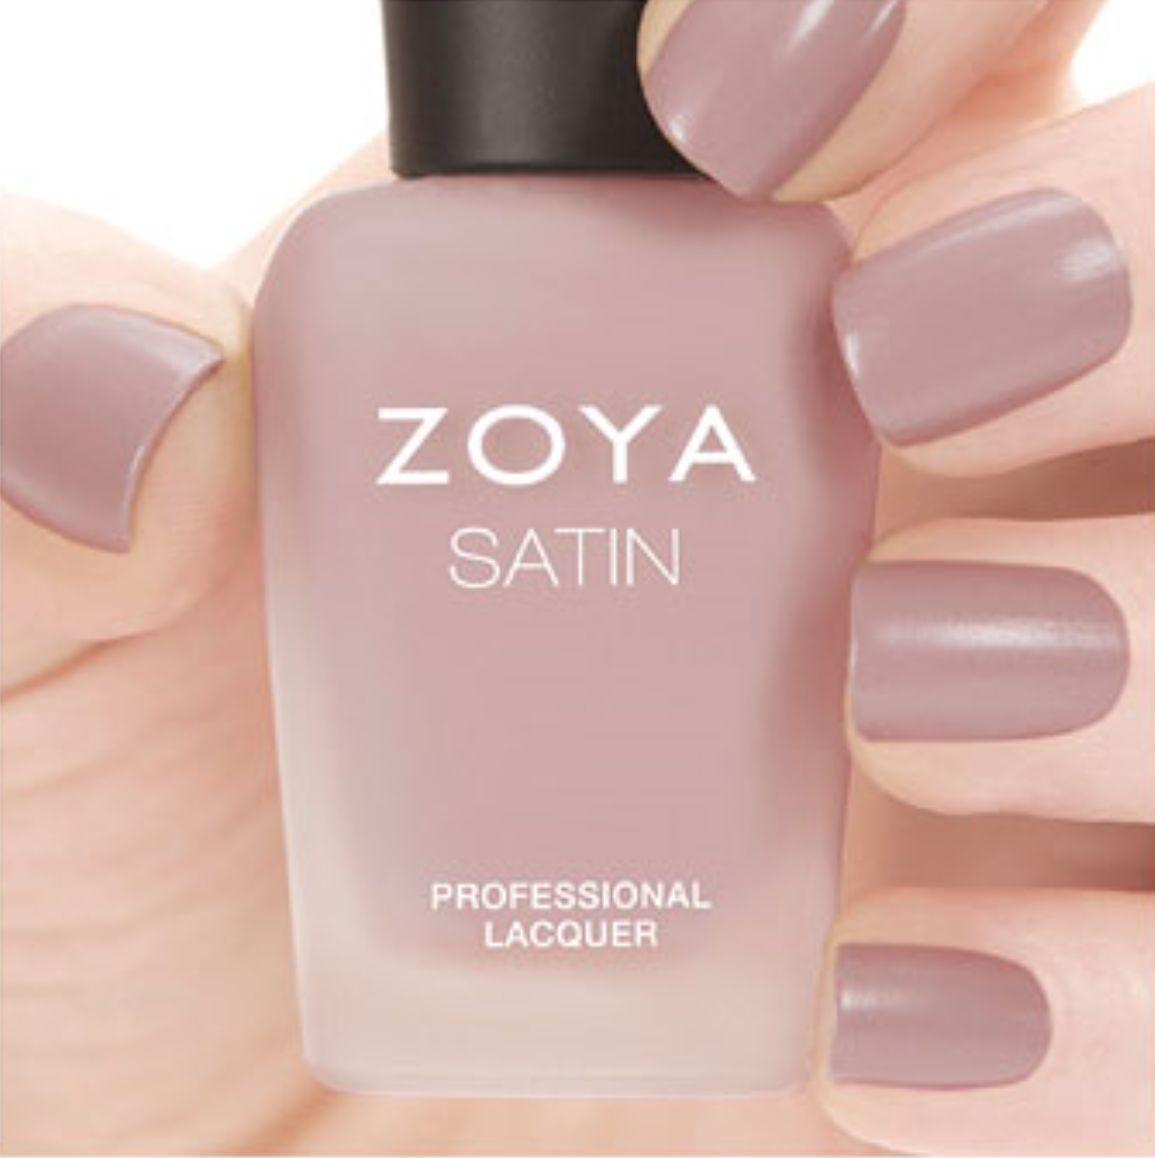 Zoya Zp780 Brittany Naturel Satins Collection Rose Mauve Matte Nail ...